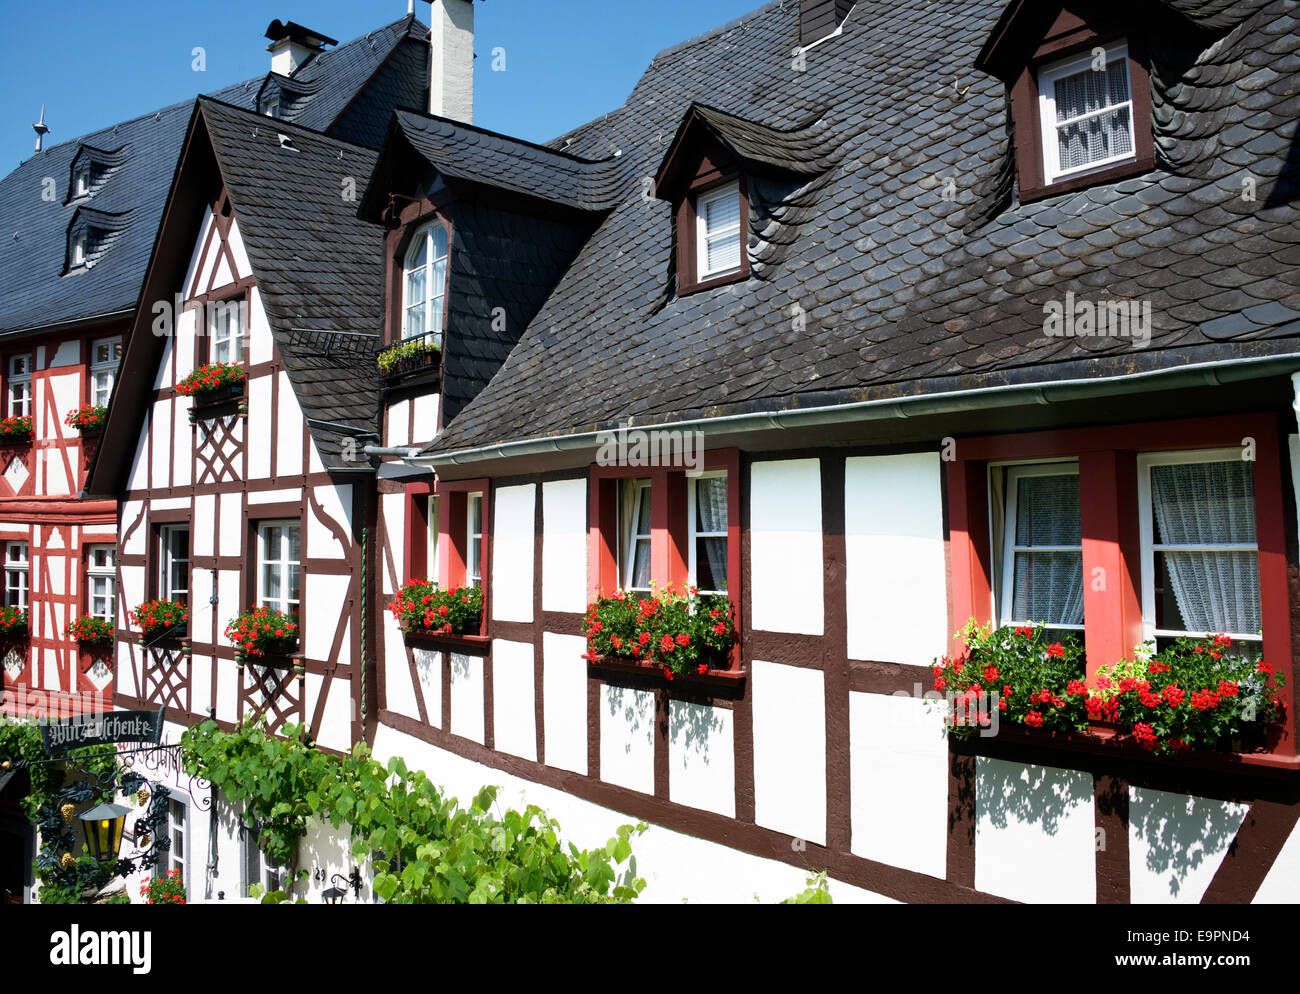 Half timbered buildings Beilstein Moselle Valley Germany - Stock Image